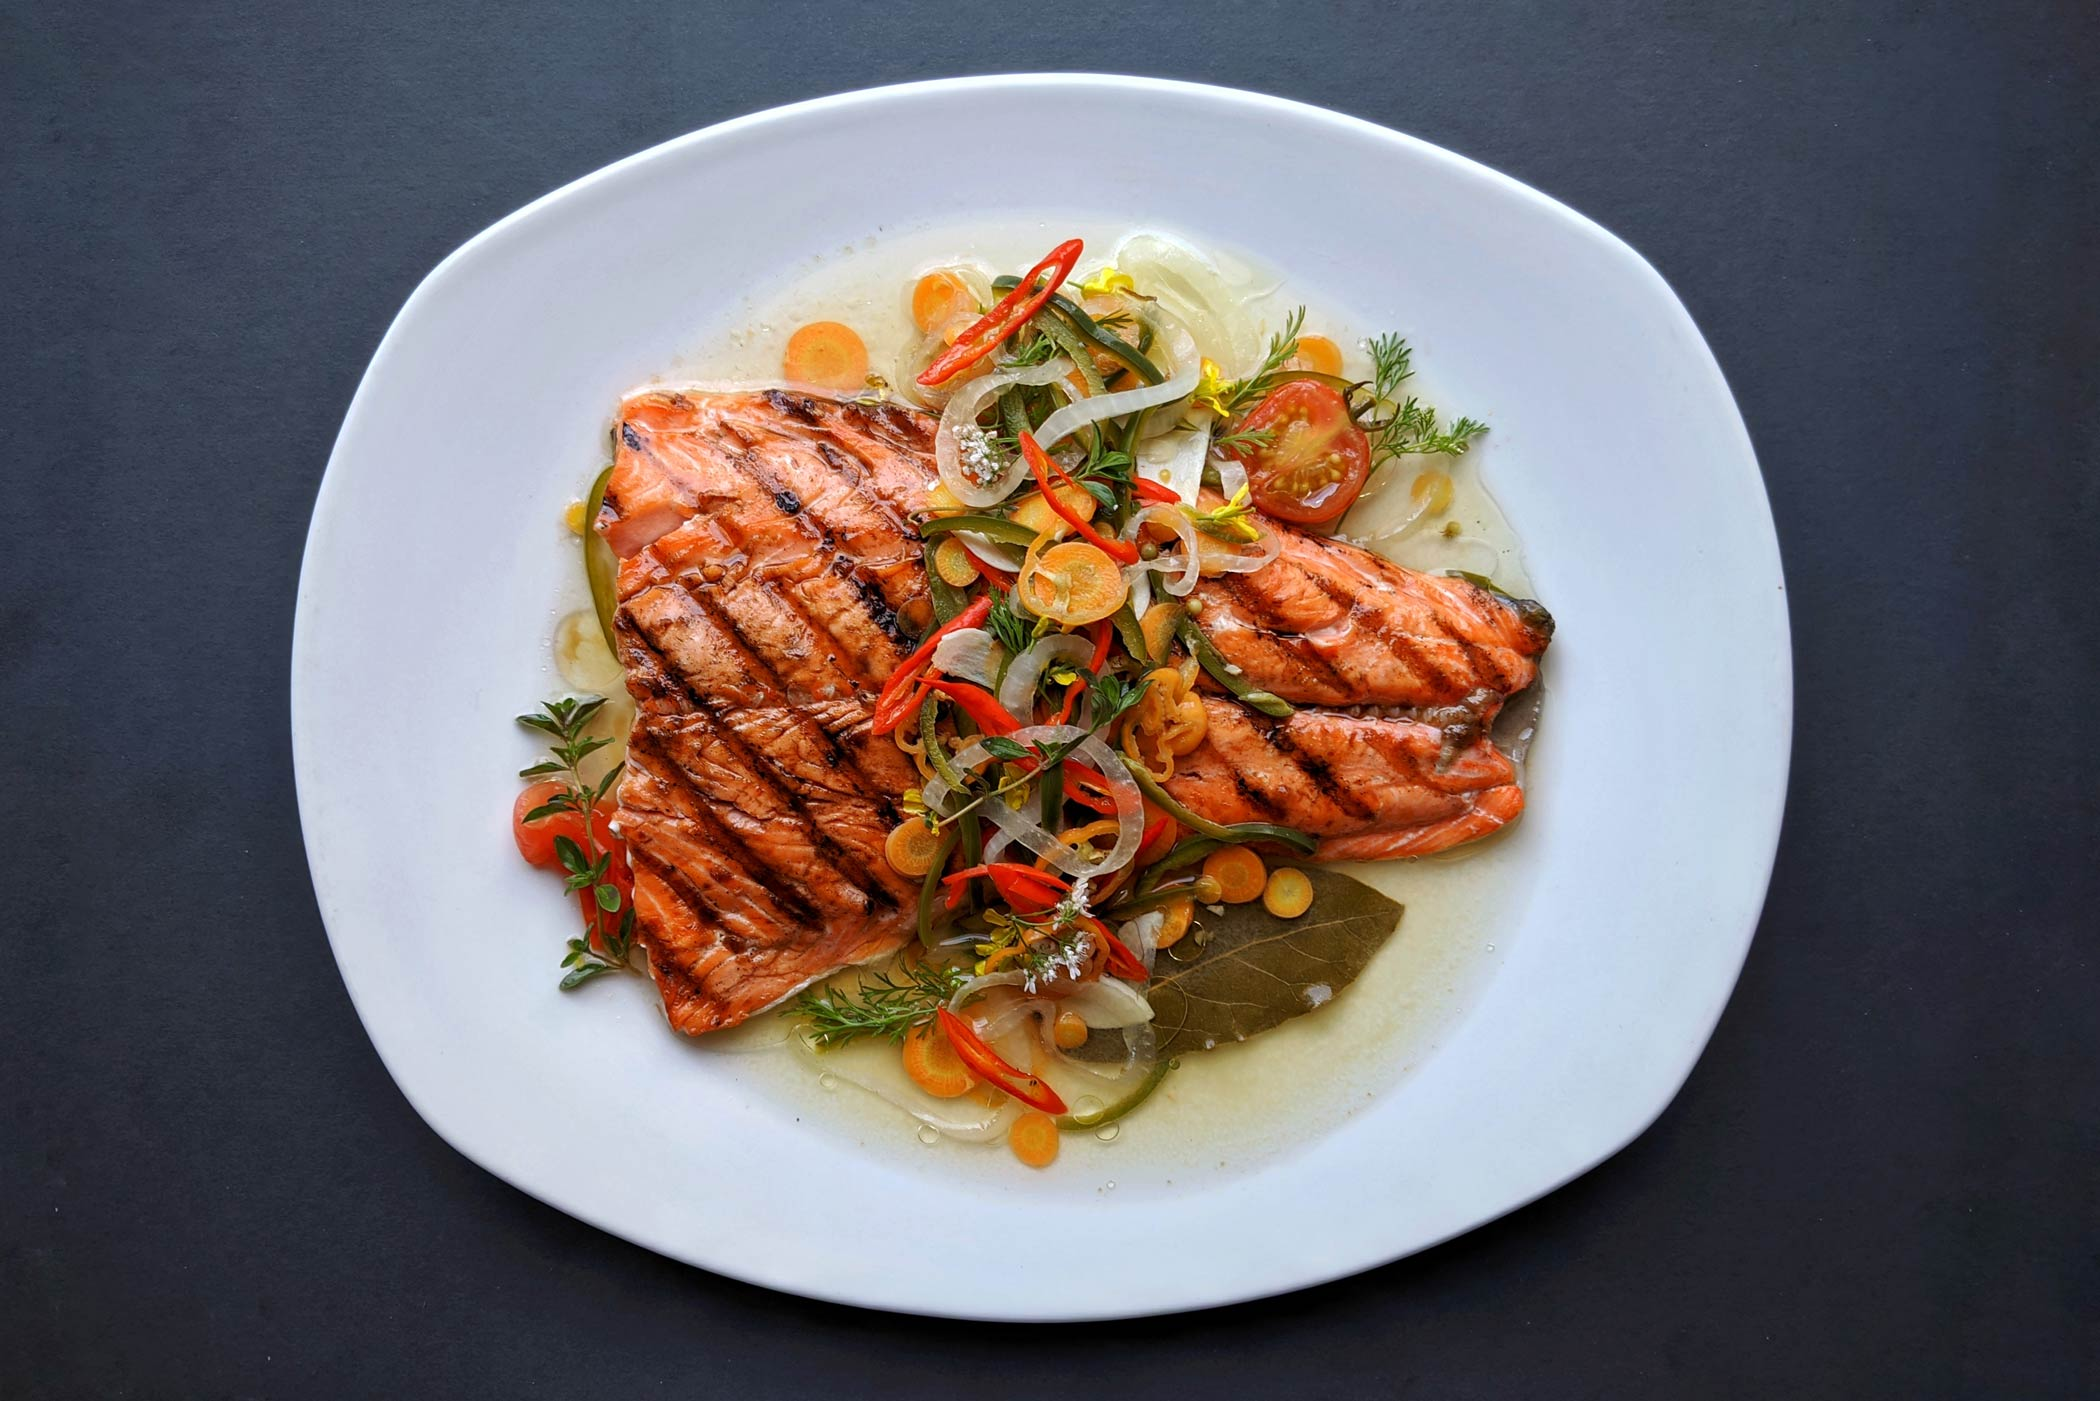 Grilled salmon in sauce topped with vegetables